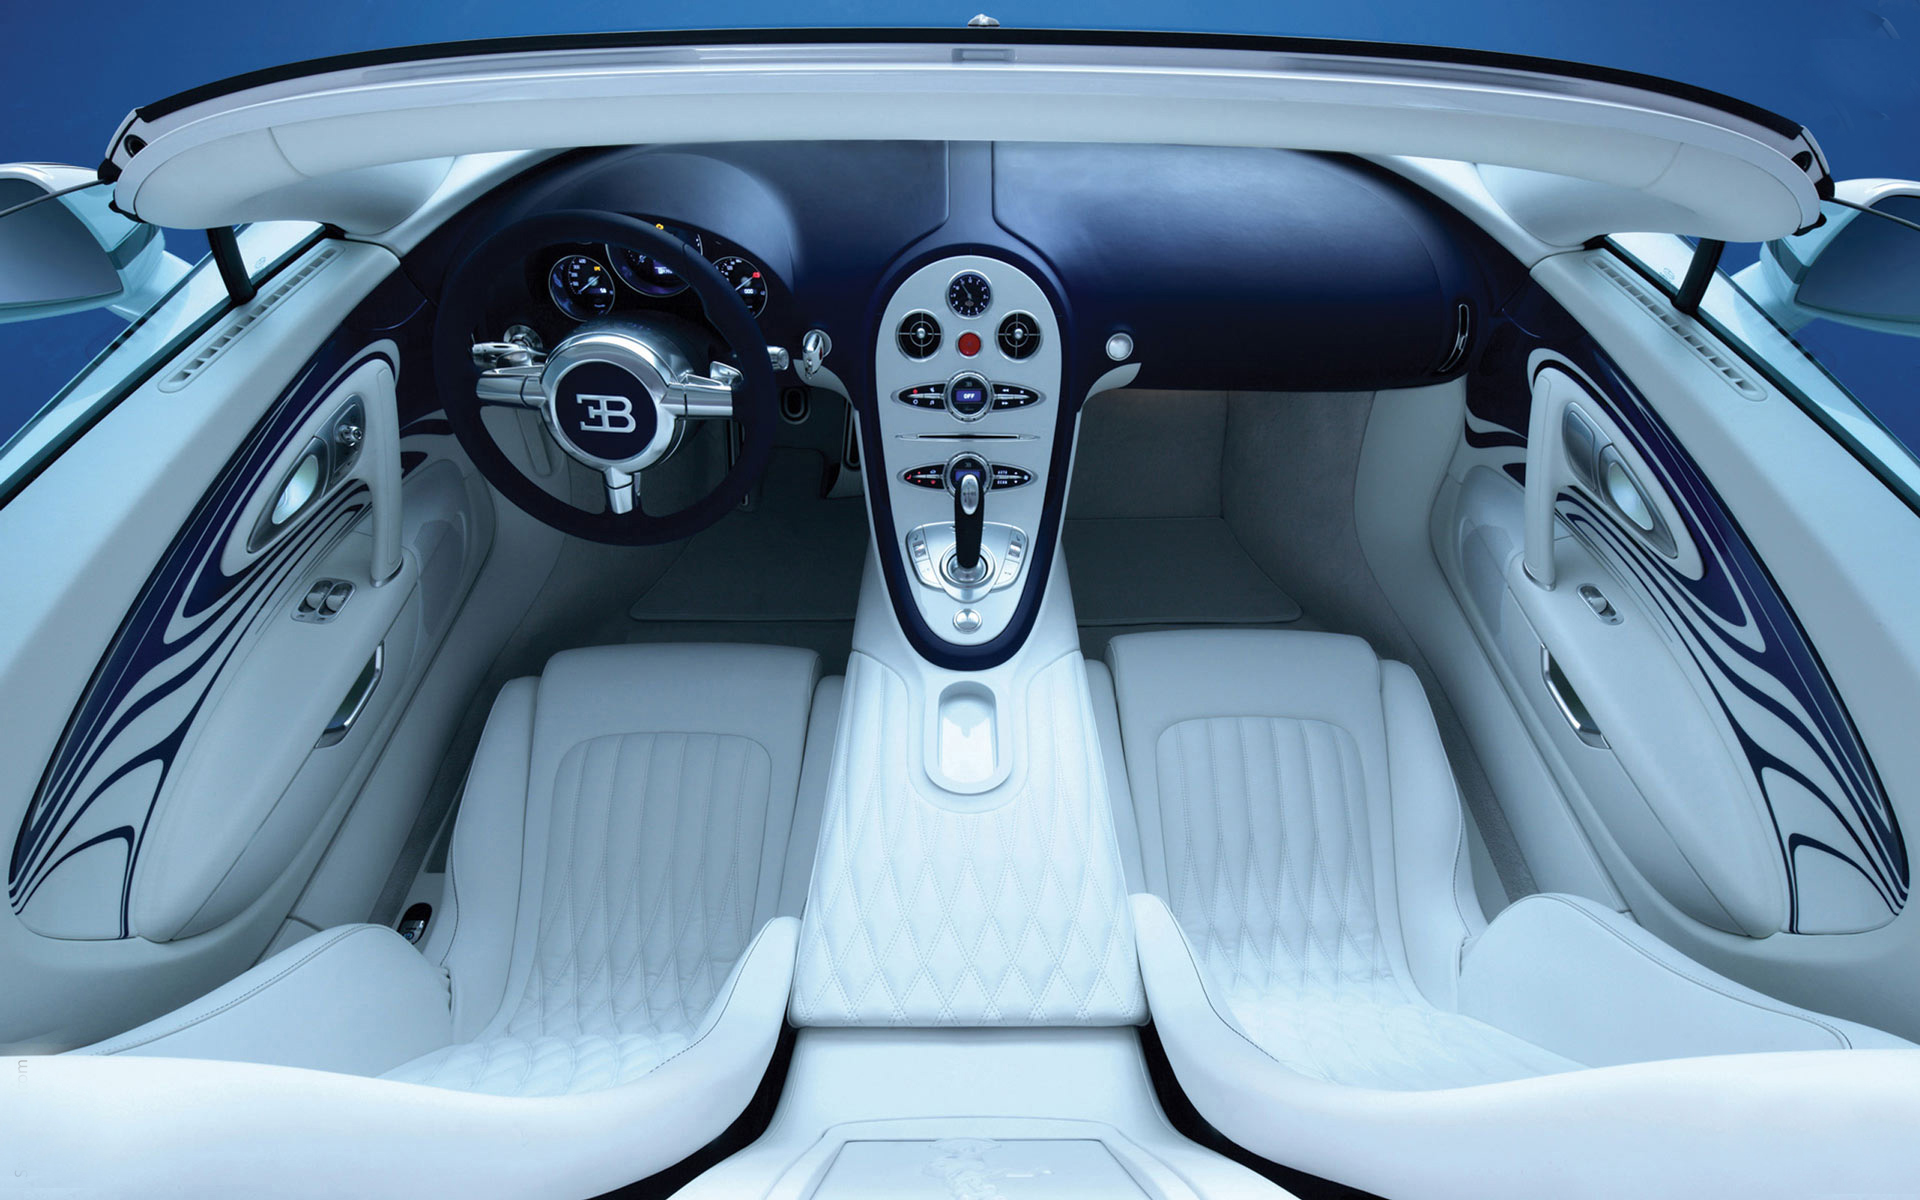 Bugatti-Veyron-Grand-Sport-Vitesse-Interior-Photo Extraordinary Bugatti Veyron Grand Sport Vitesse Cars Trend